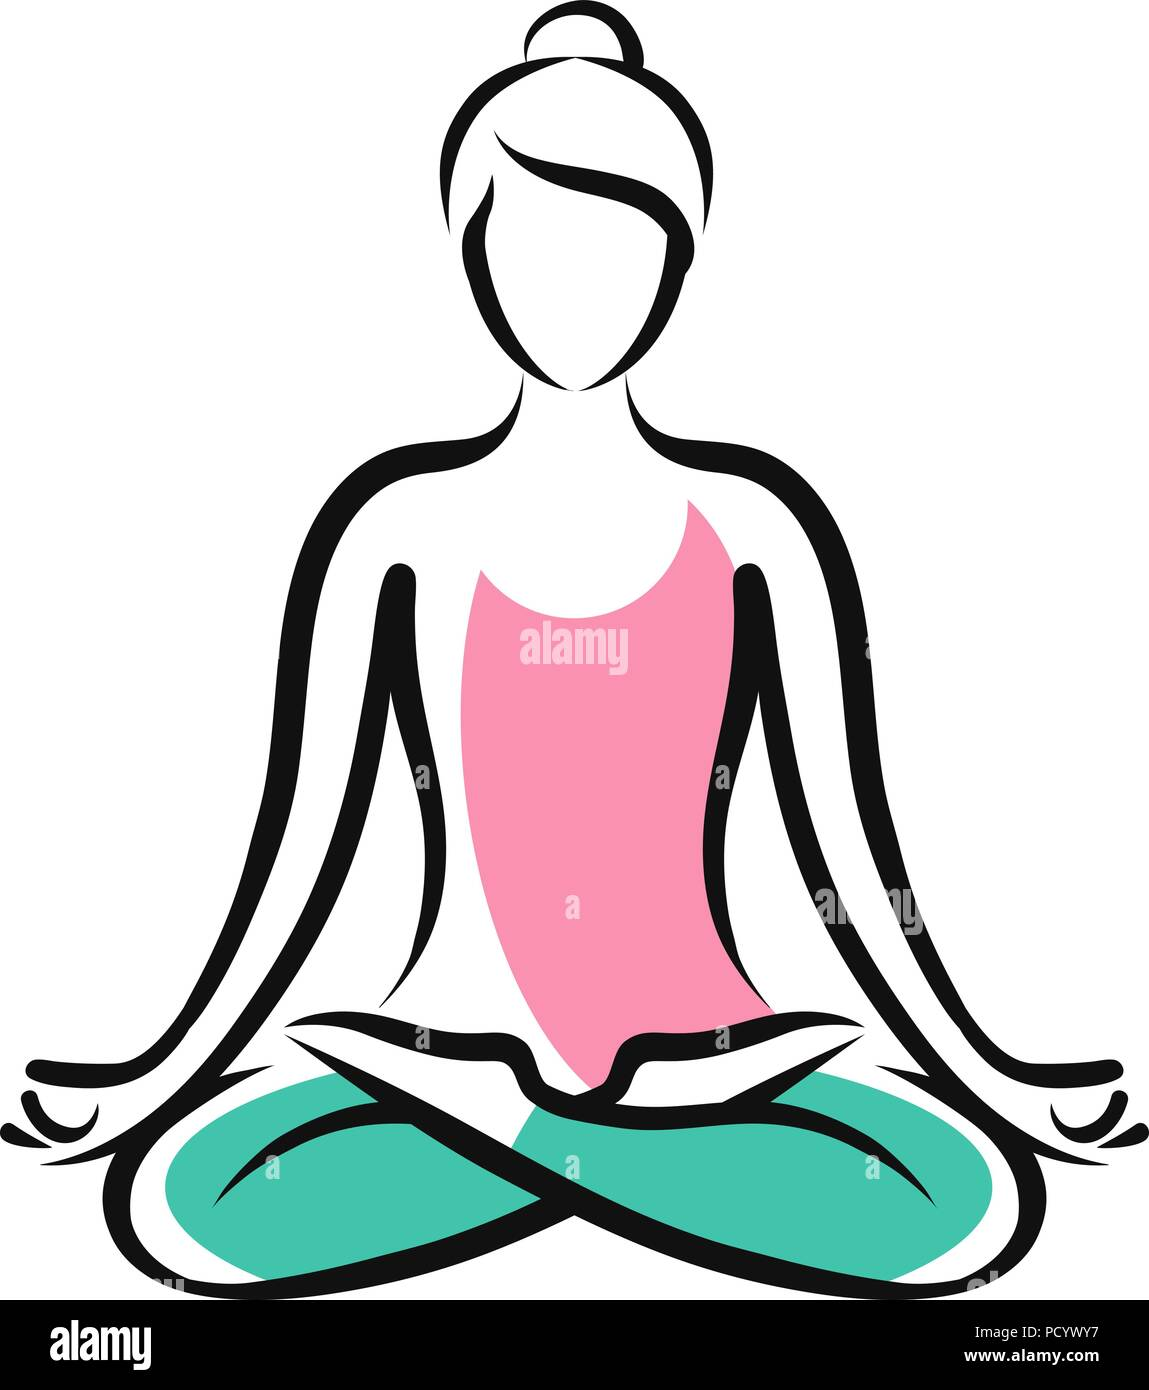 Girl sitting in lotus pose. Yoga, fitness logo or symbol. Vector illustration - Stock Vector